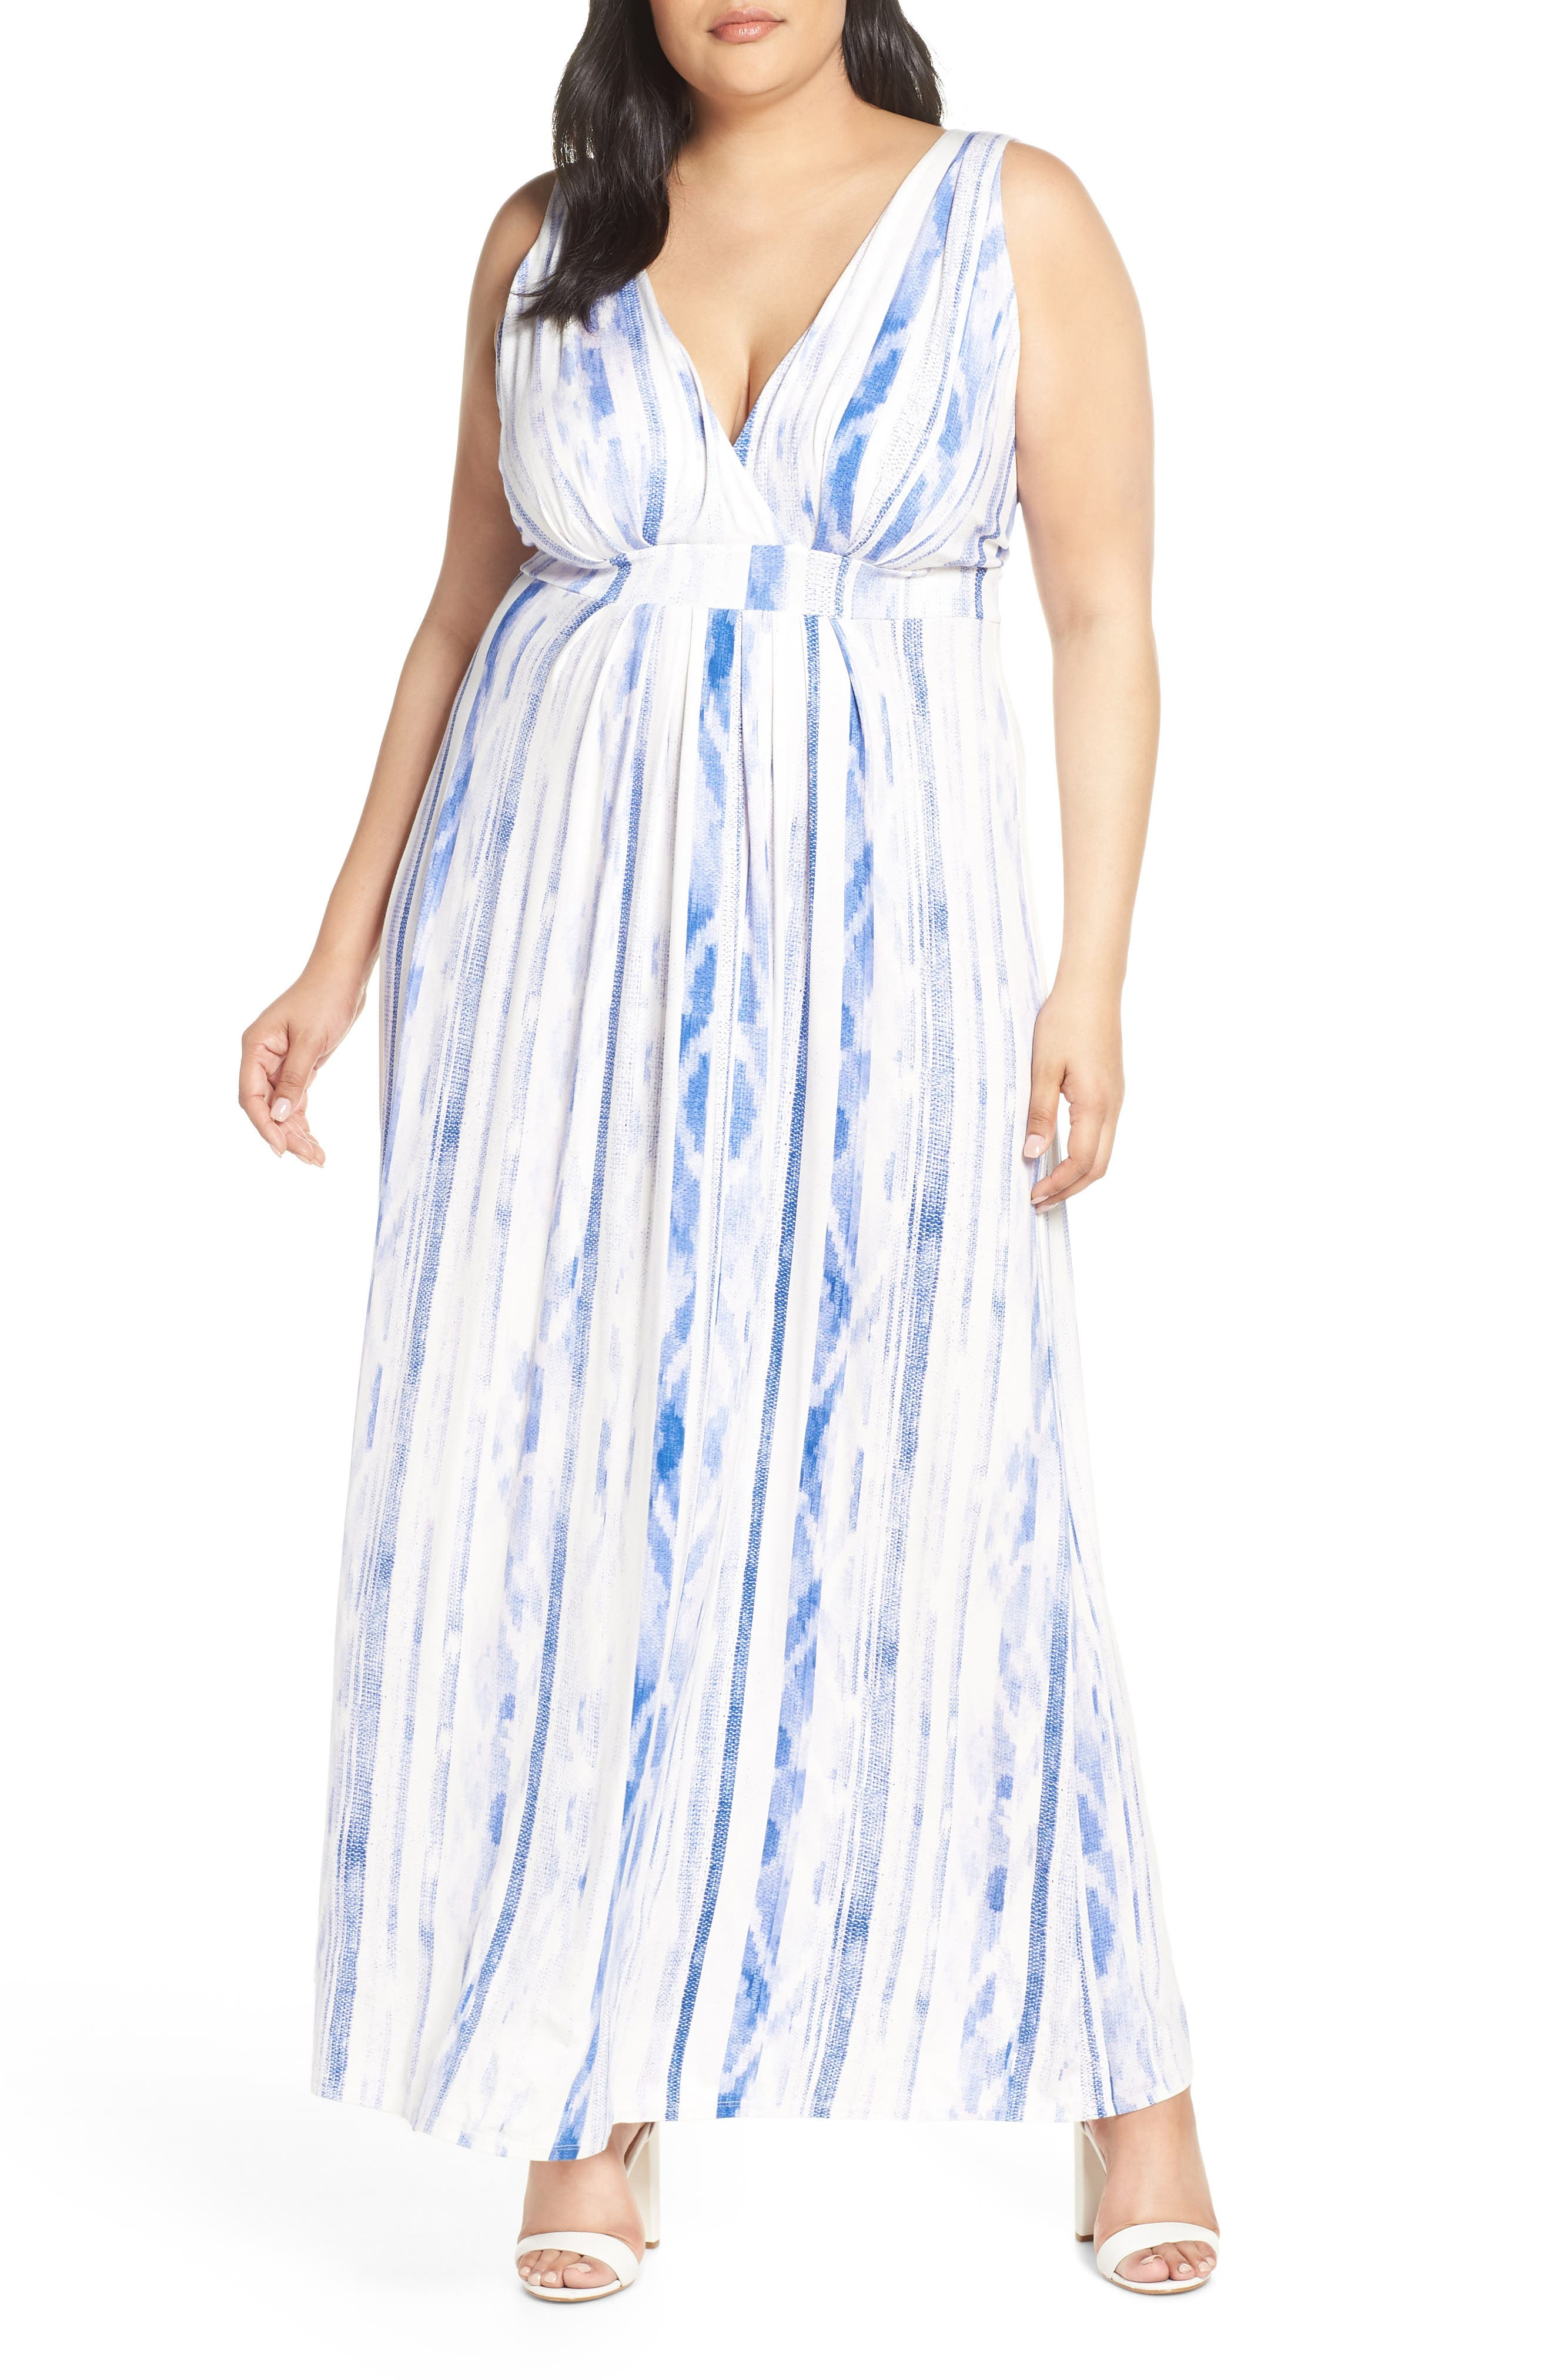 Plus Size Lemon Tart Chloe Maxi Dress, White